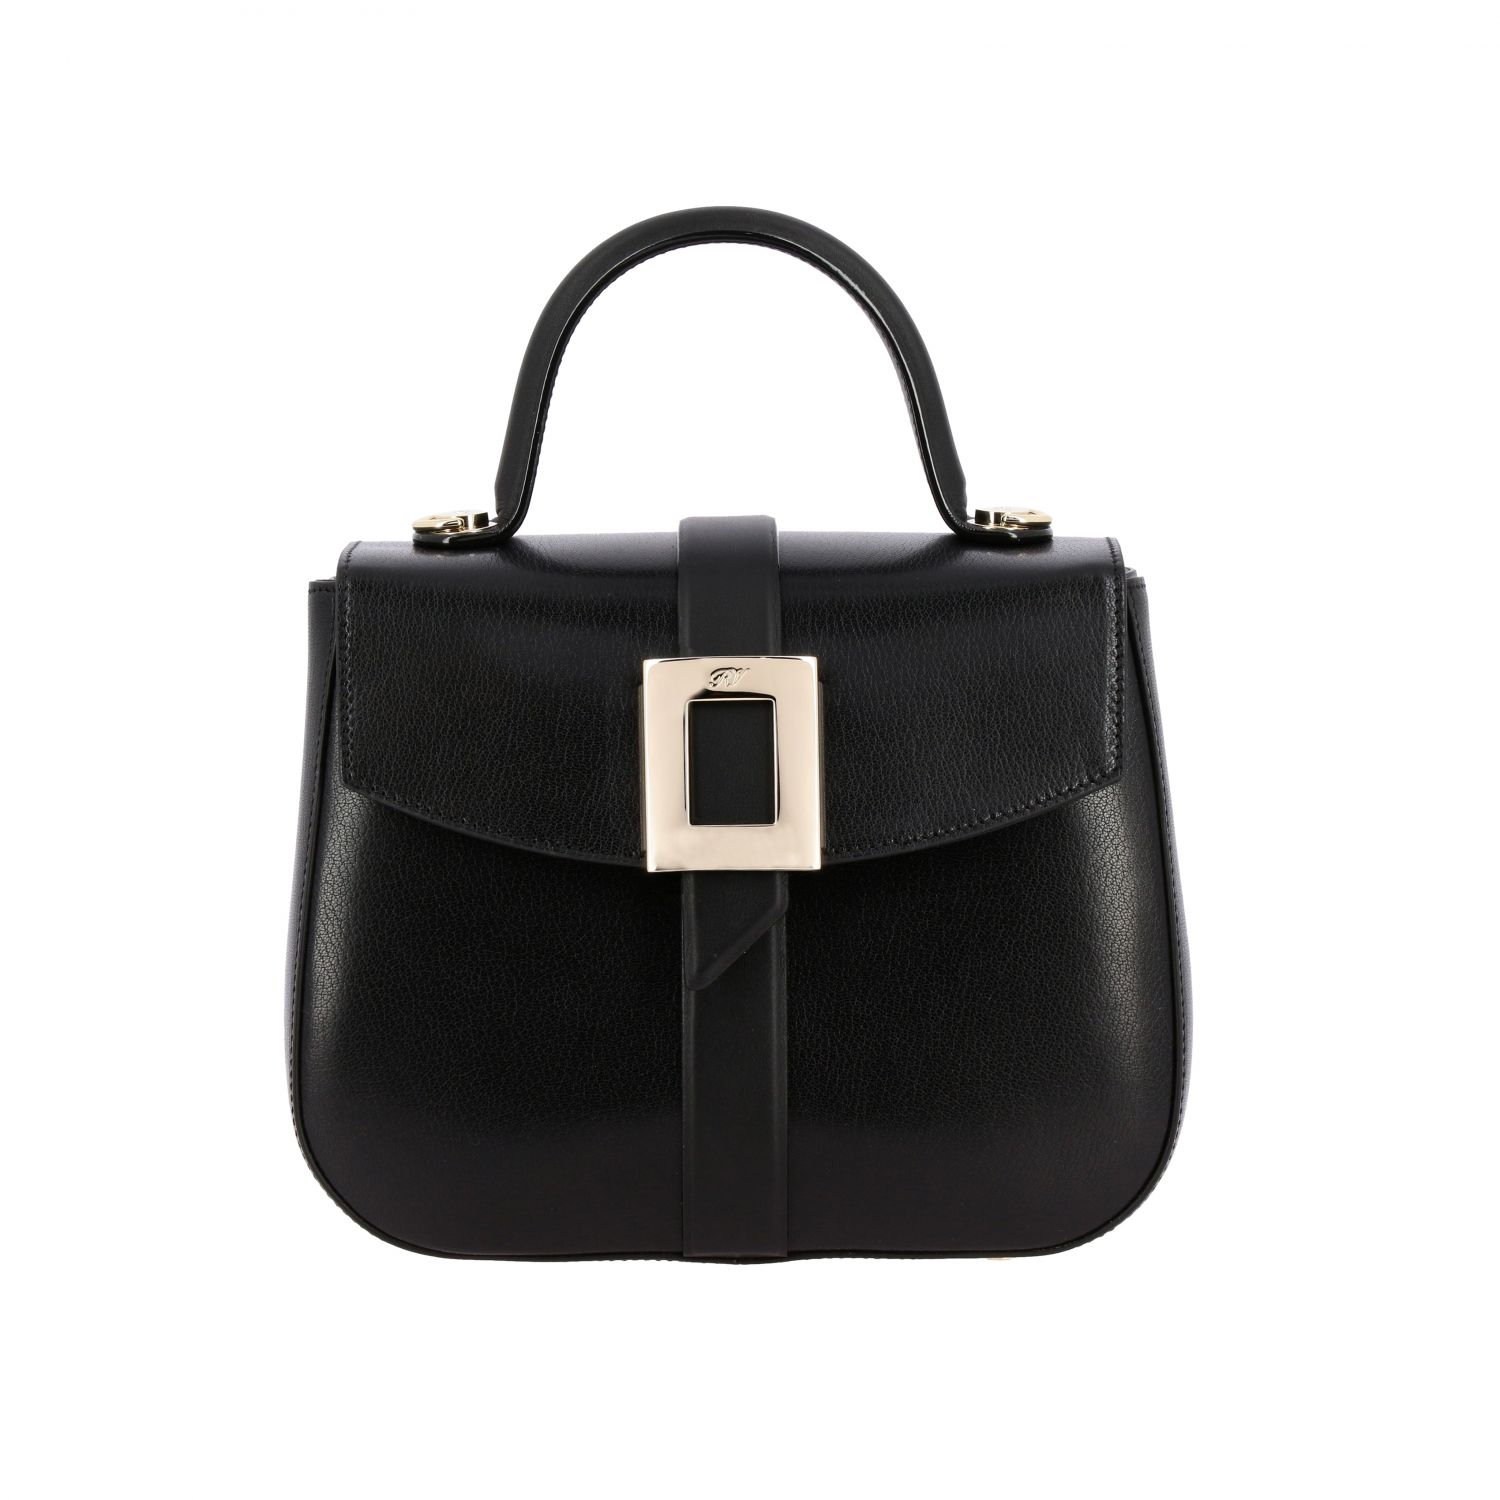 Handbag Roger Vivier: Shoulder bag women Roger Vivier black 1